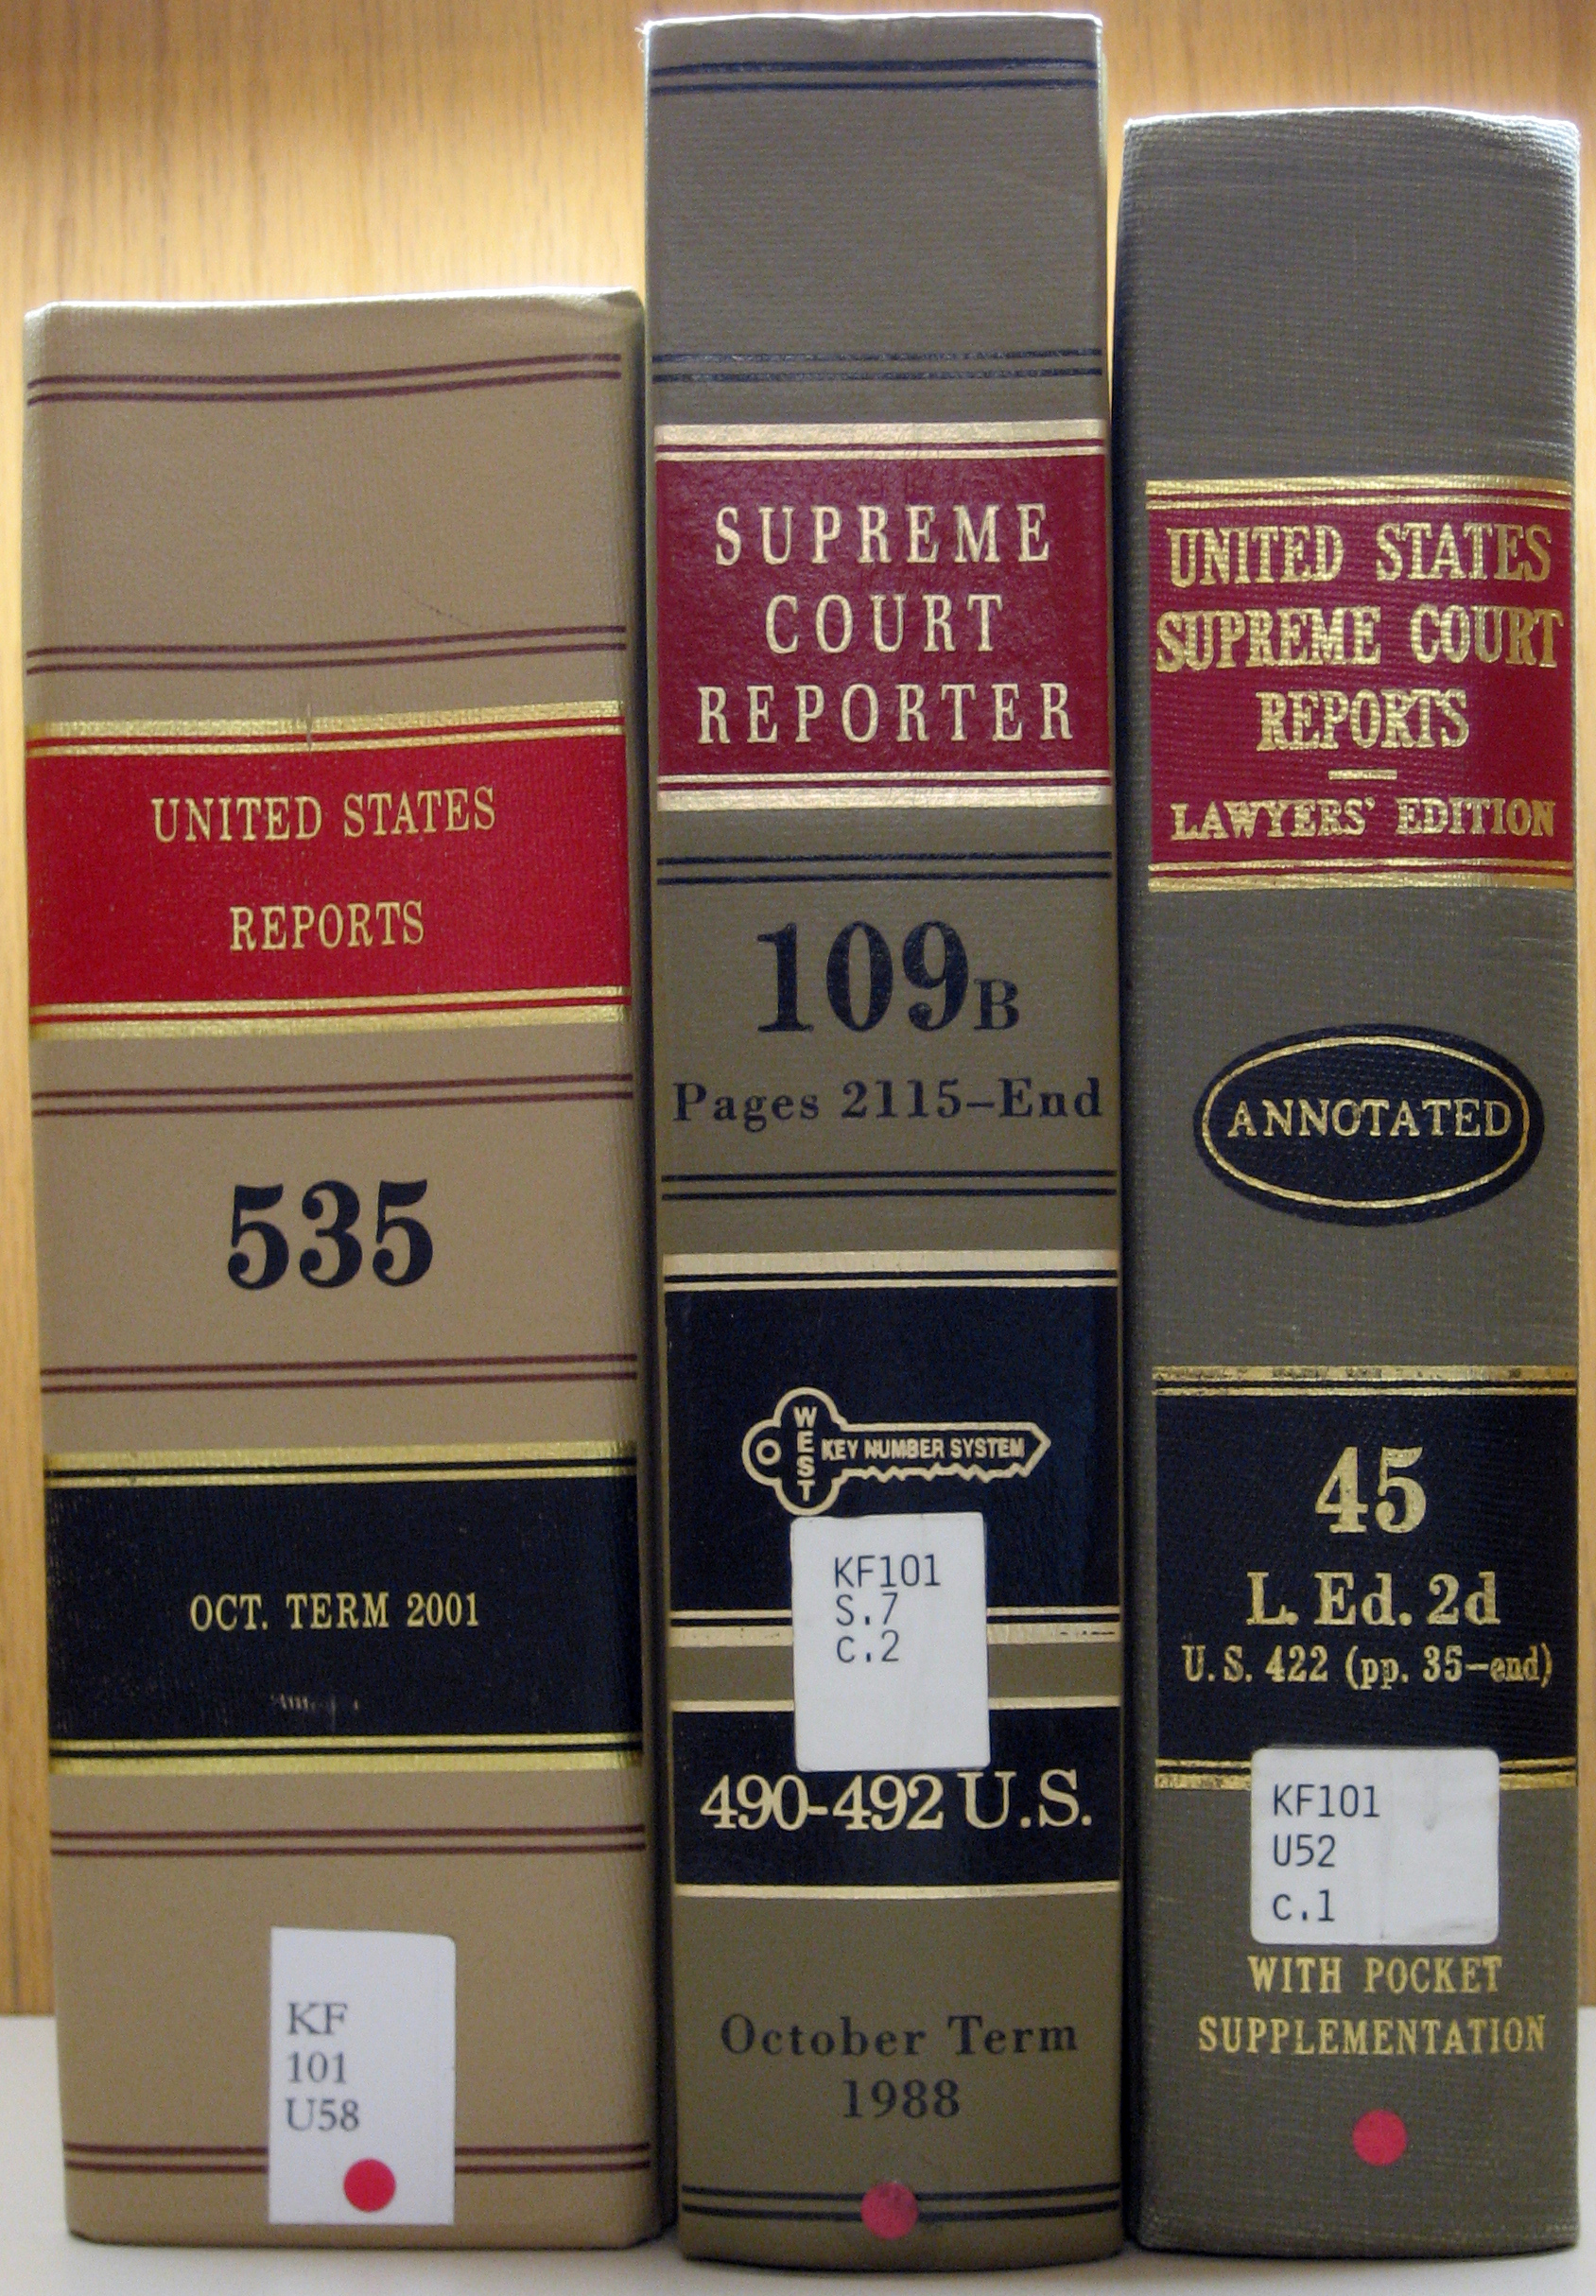 Supreme Court reporter books